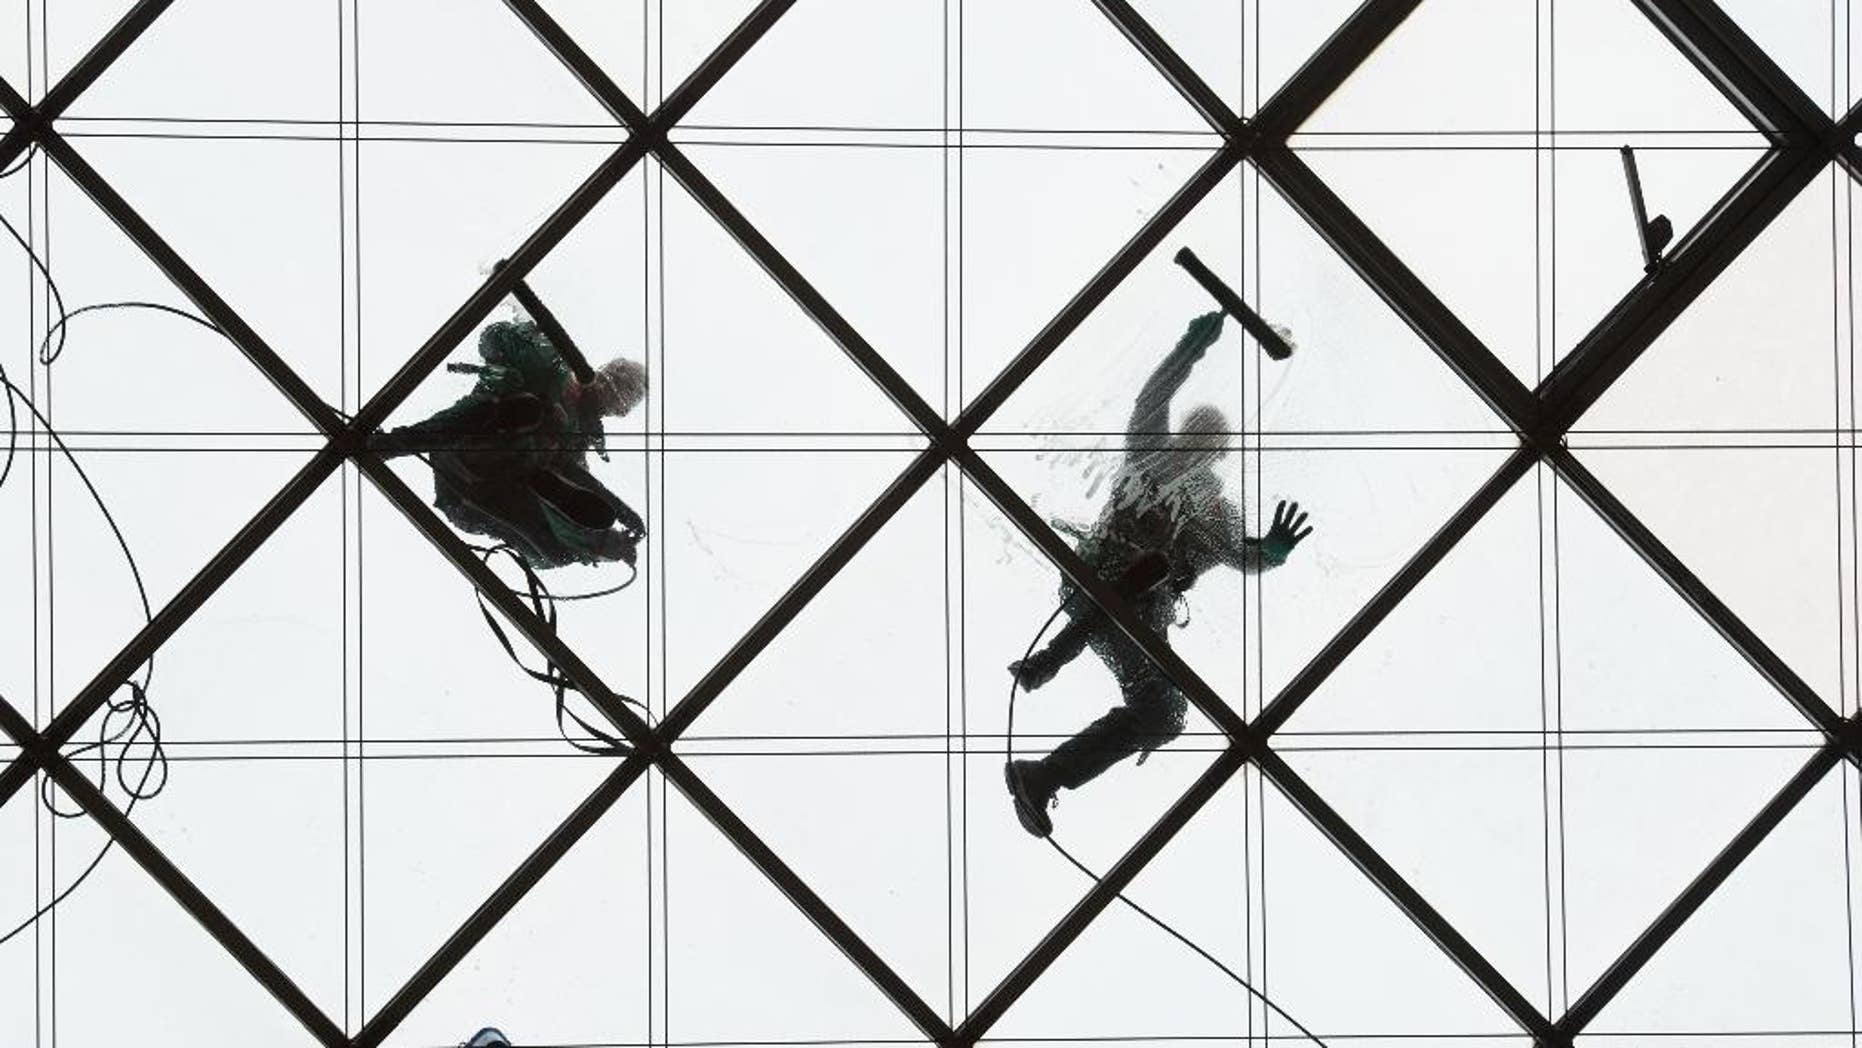 Two  window cleaners work on  the 27-meters-high glass ceiling of  a building in Dresden,Germany, Wednesday, March 30, 2016.  (Sebastian Kahnert/dpa via AP)